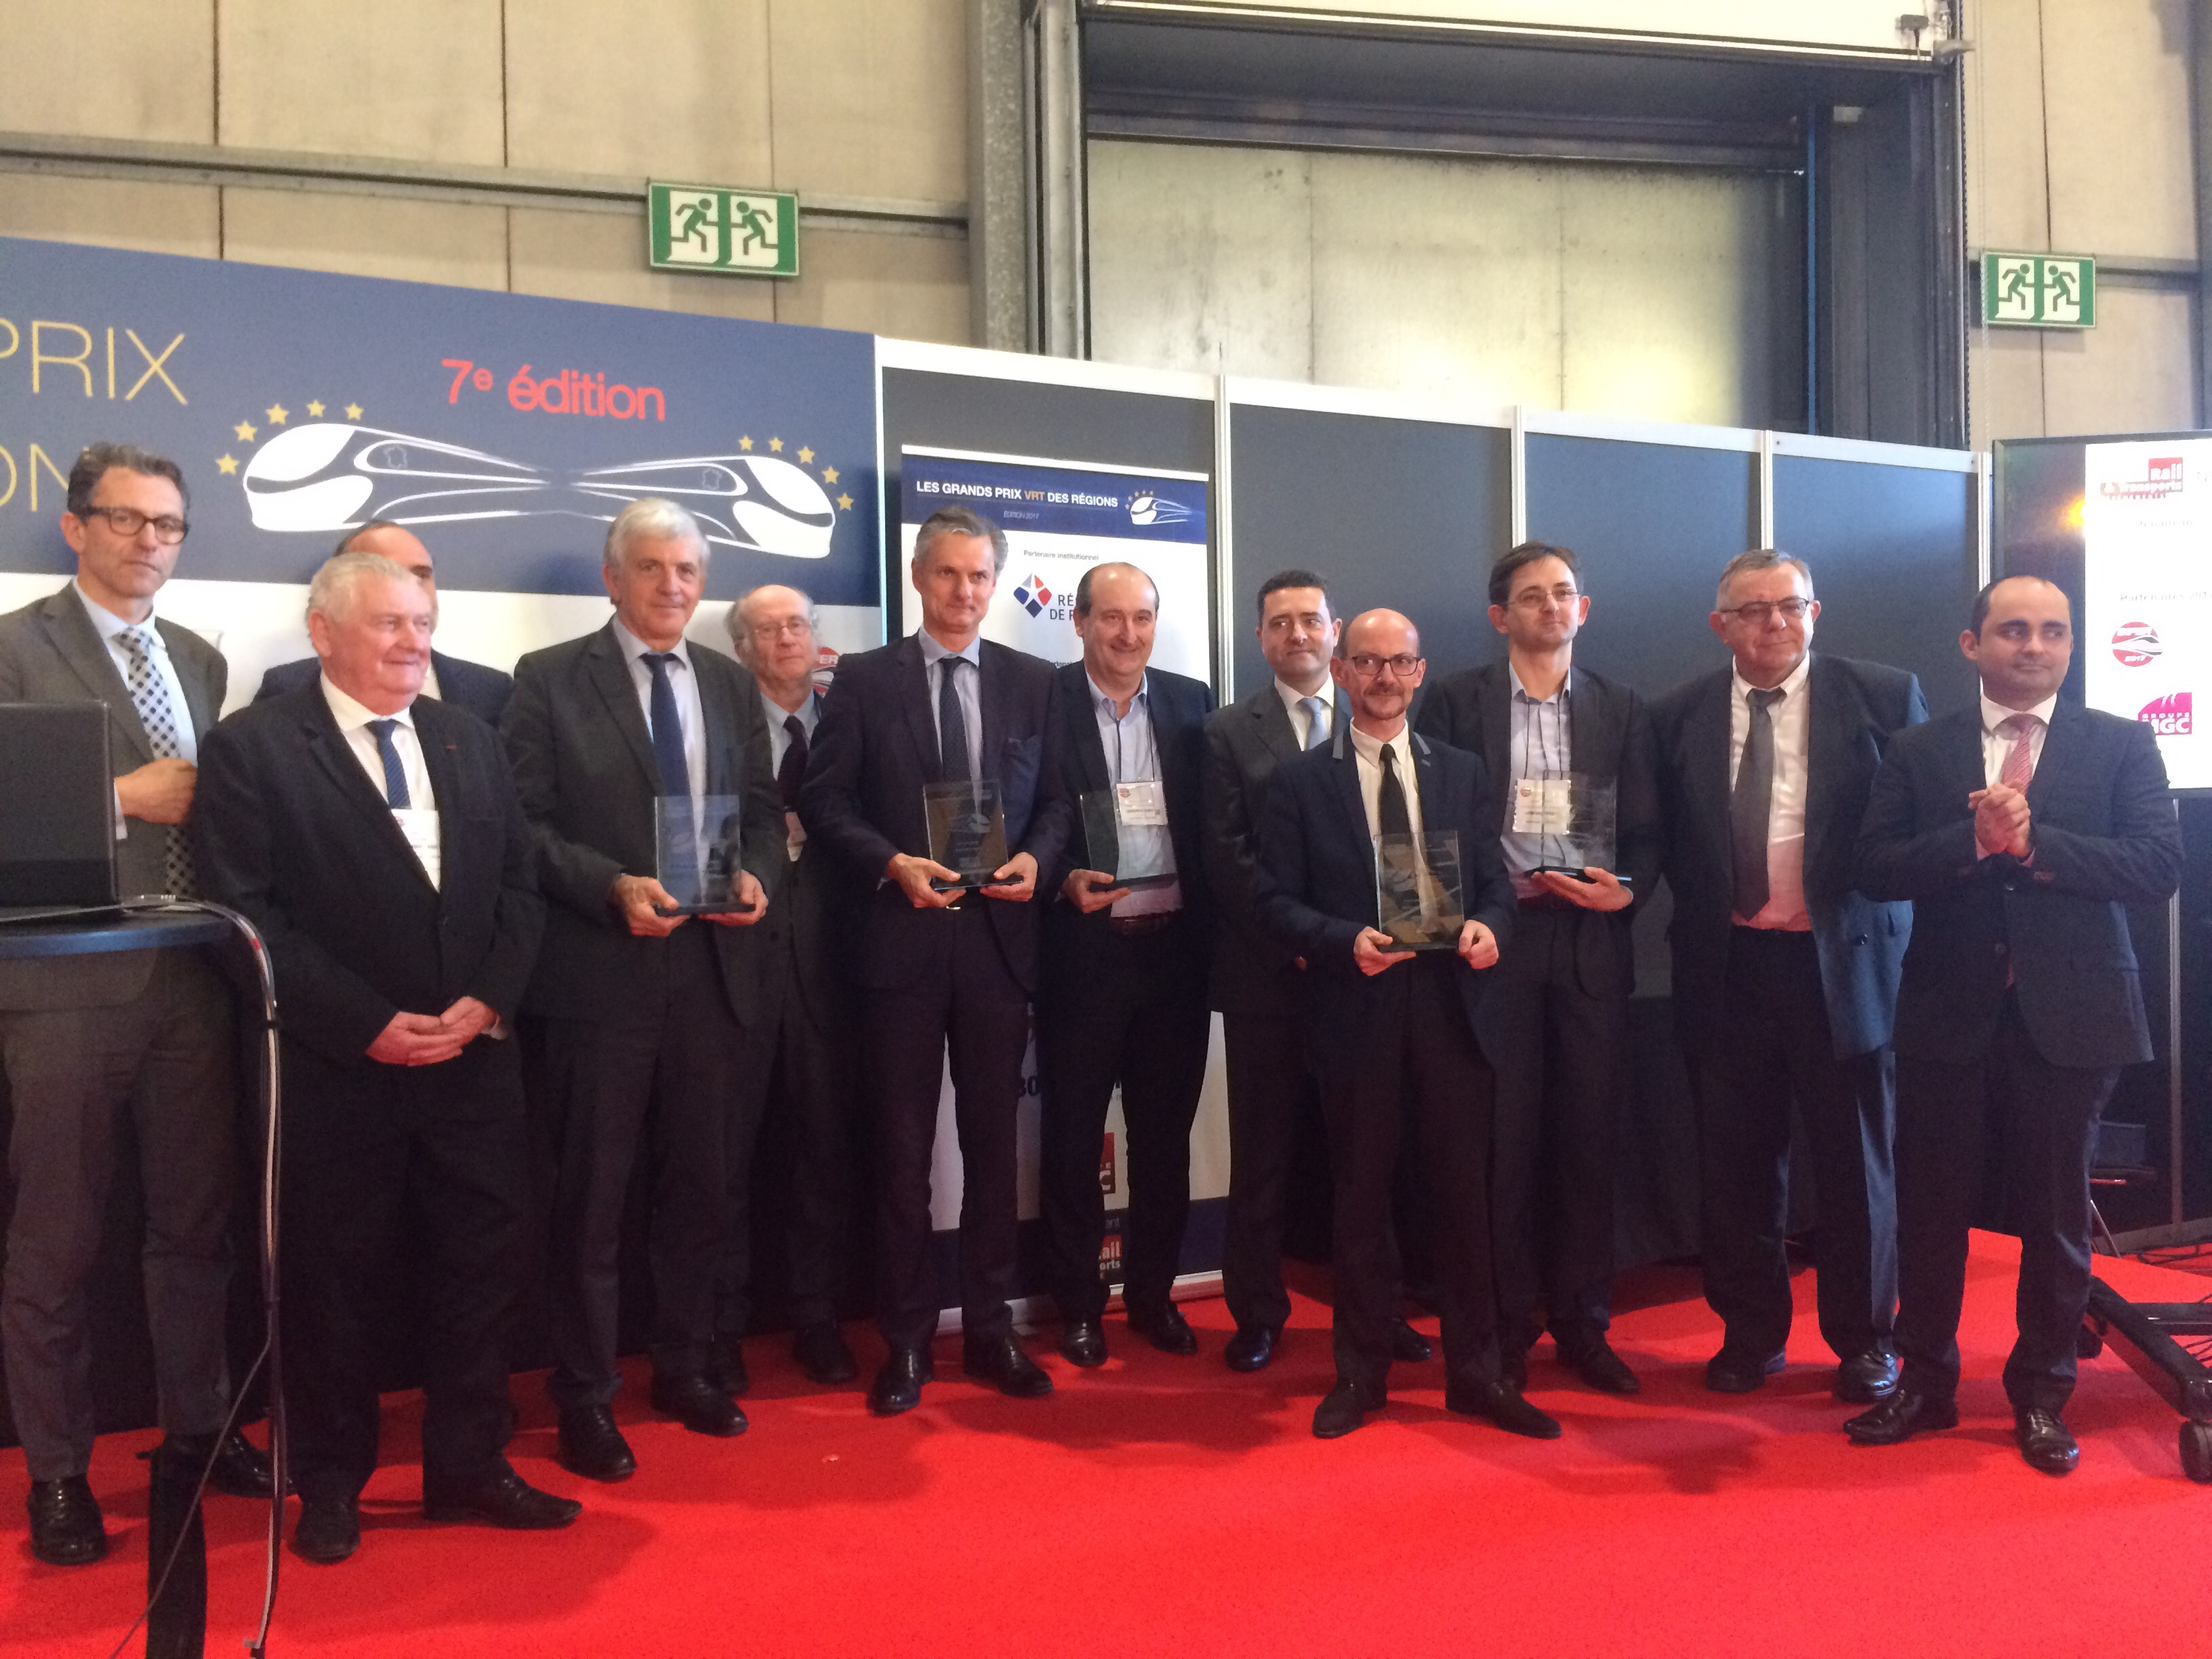 Ville rail et transports, regions, prix, TER, train, transport, mobilite, territoires, innovation, autocar